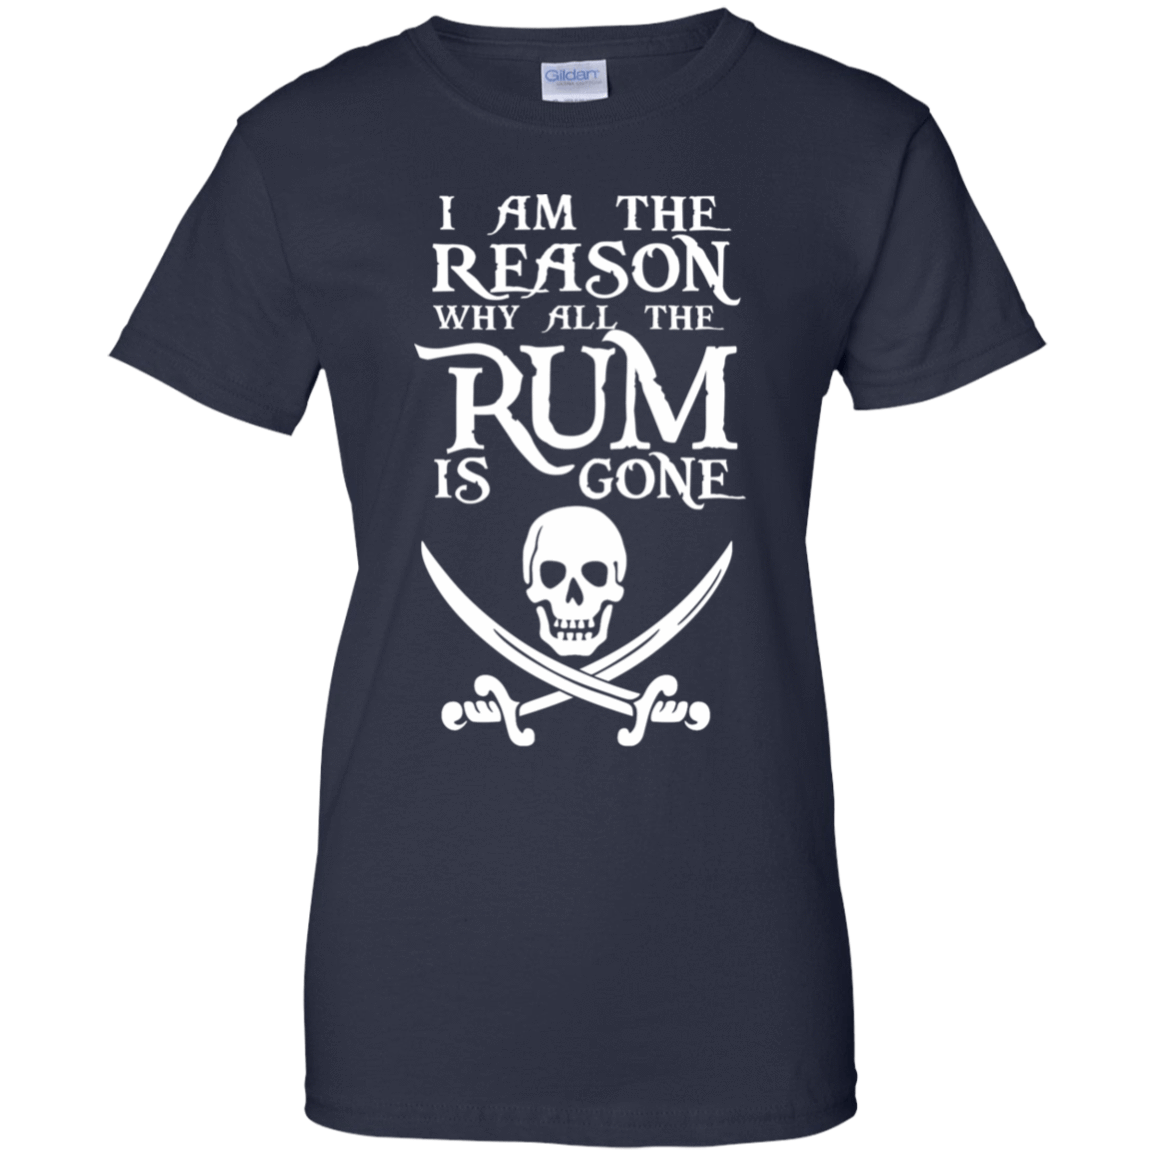 I Am The Reason Why All The Rum Is Gone 939-9259-73425466-44765 - Tee Ript